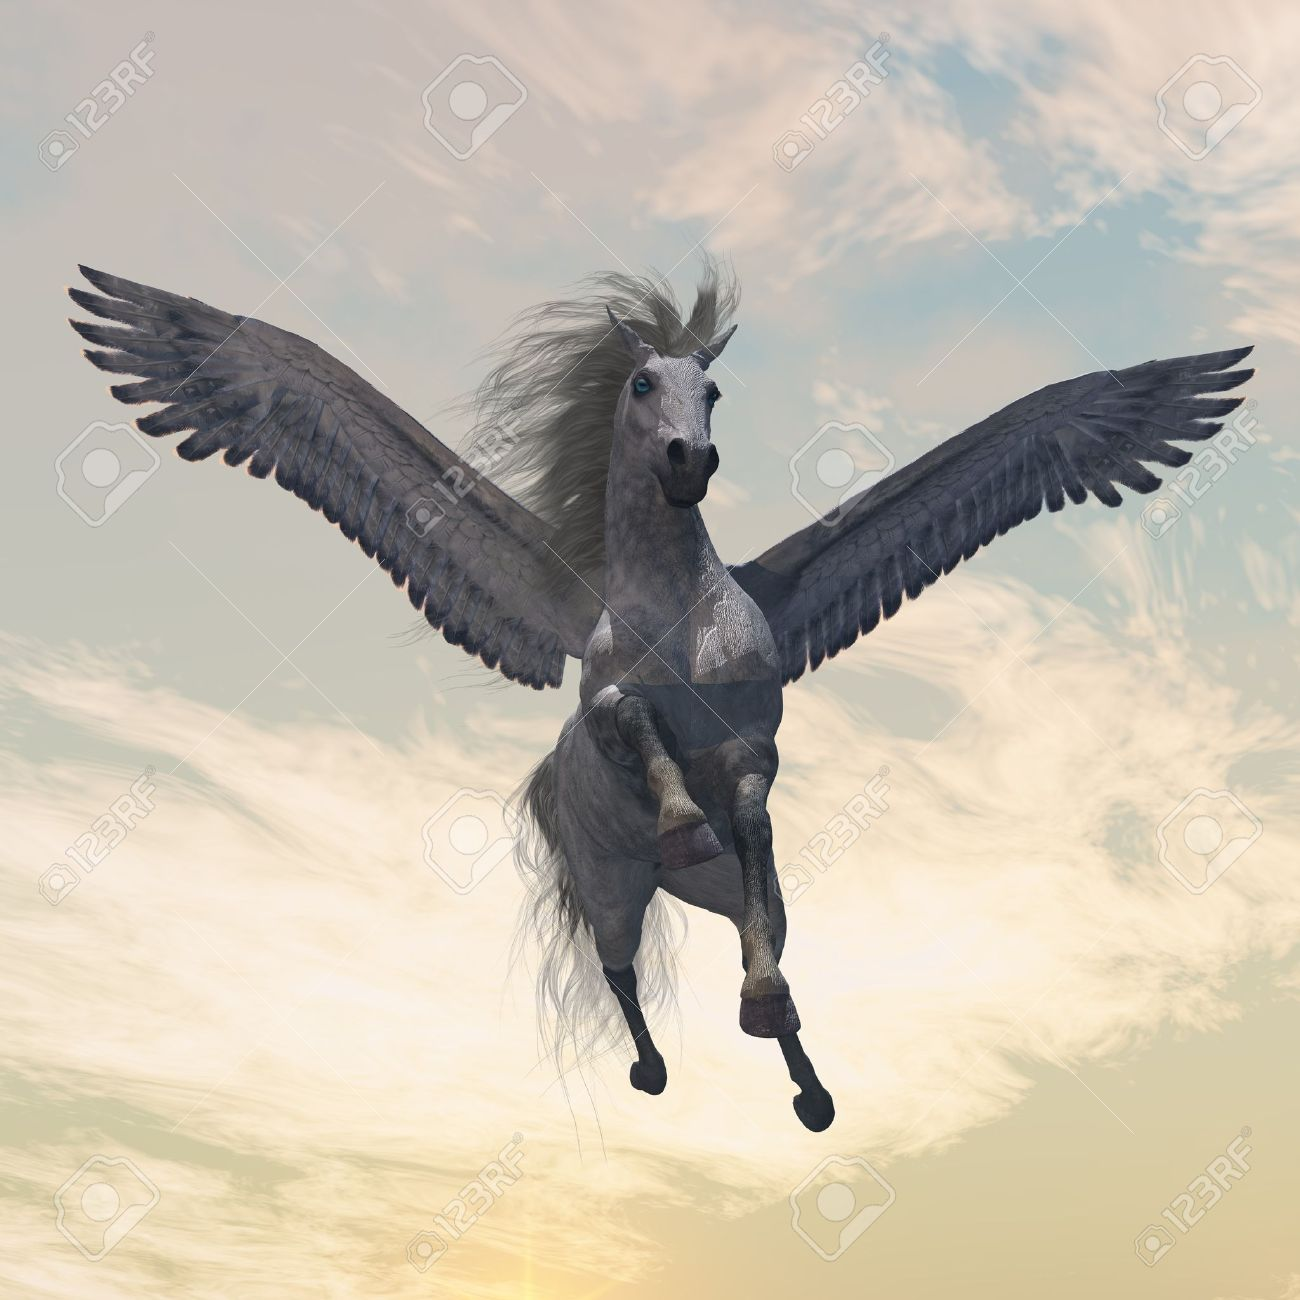 PEGASUS 2 - The fabled creature of myth and legend, the white Pegasus, flies with beautiful wings. Stock Photo - 8711085